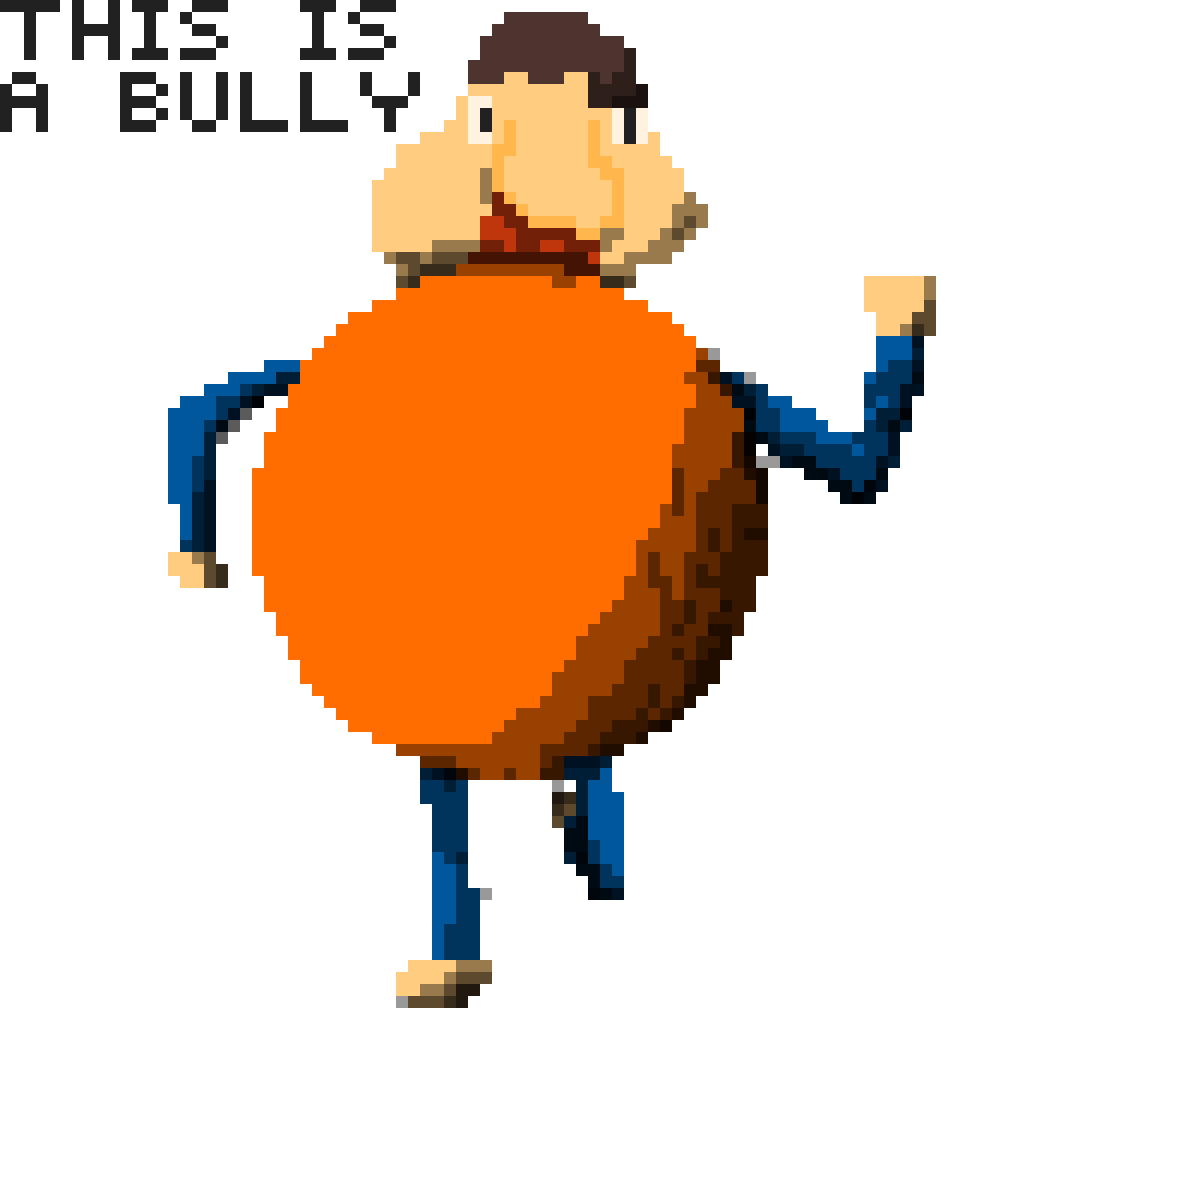 Bully drawing instagram. Pixilart this is a